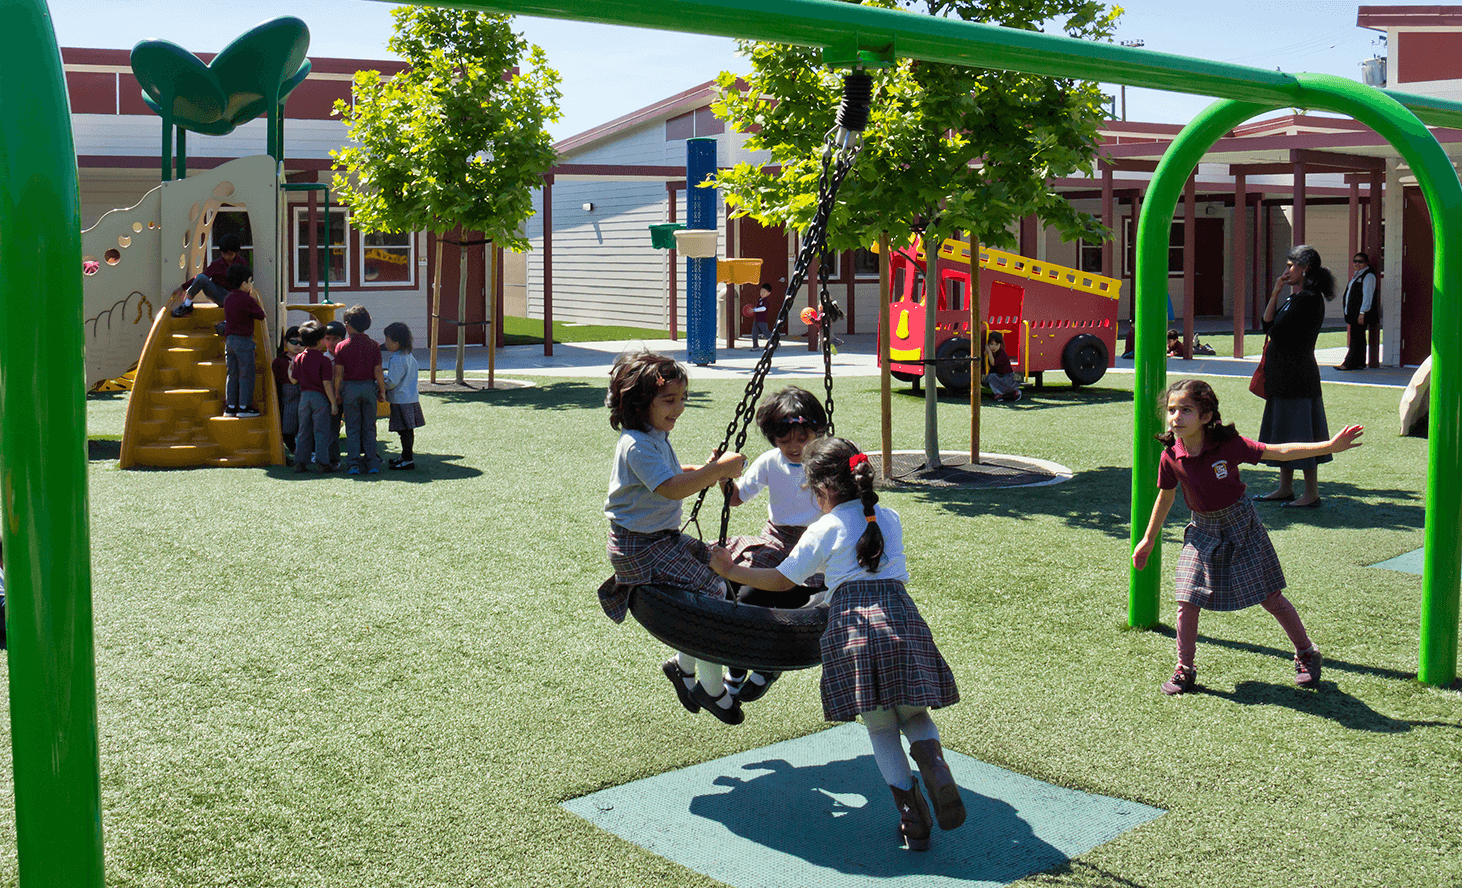 Playground Swing | Challenger School - Berryessa | Private School In San Jose, California